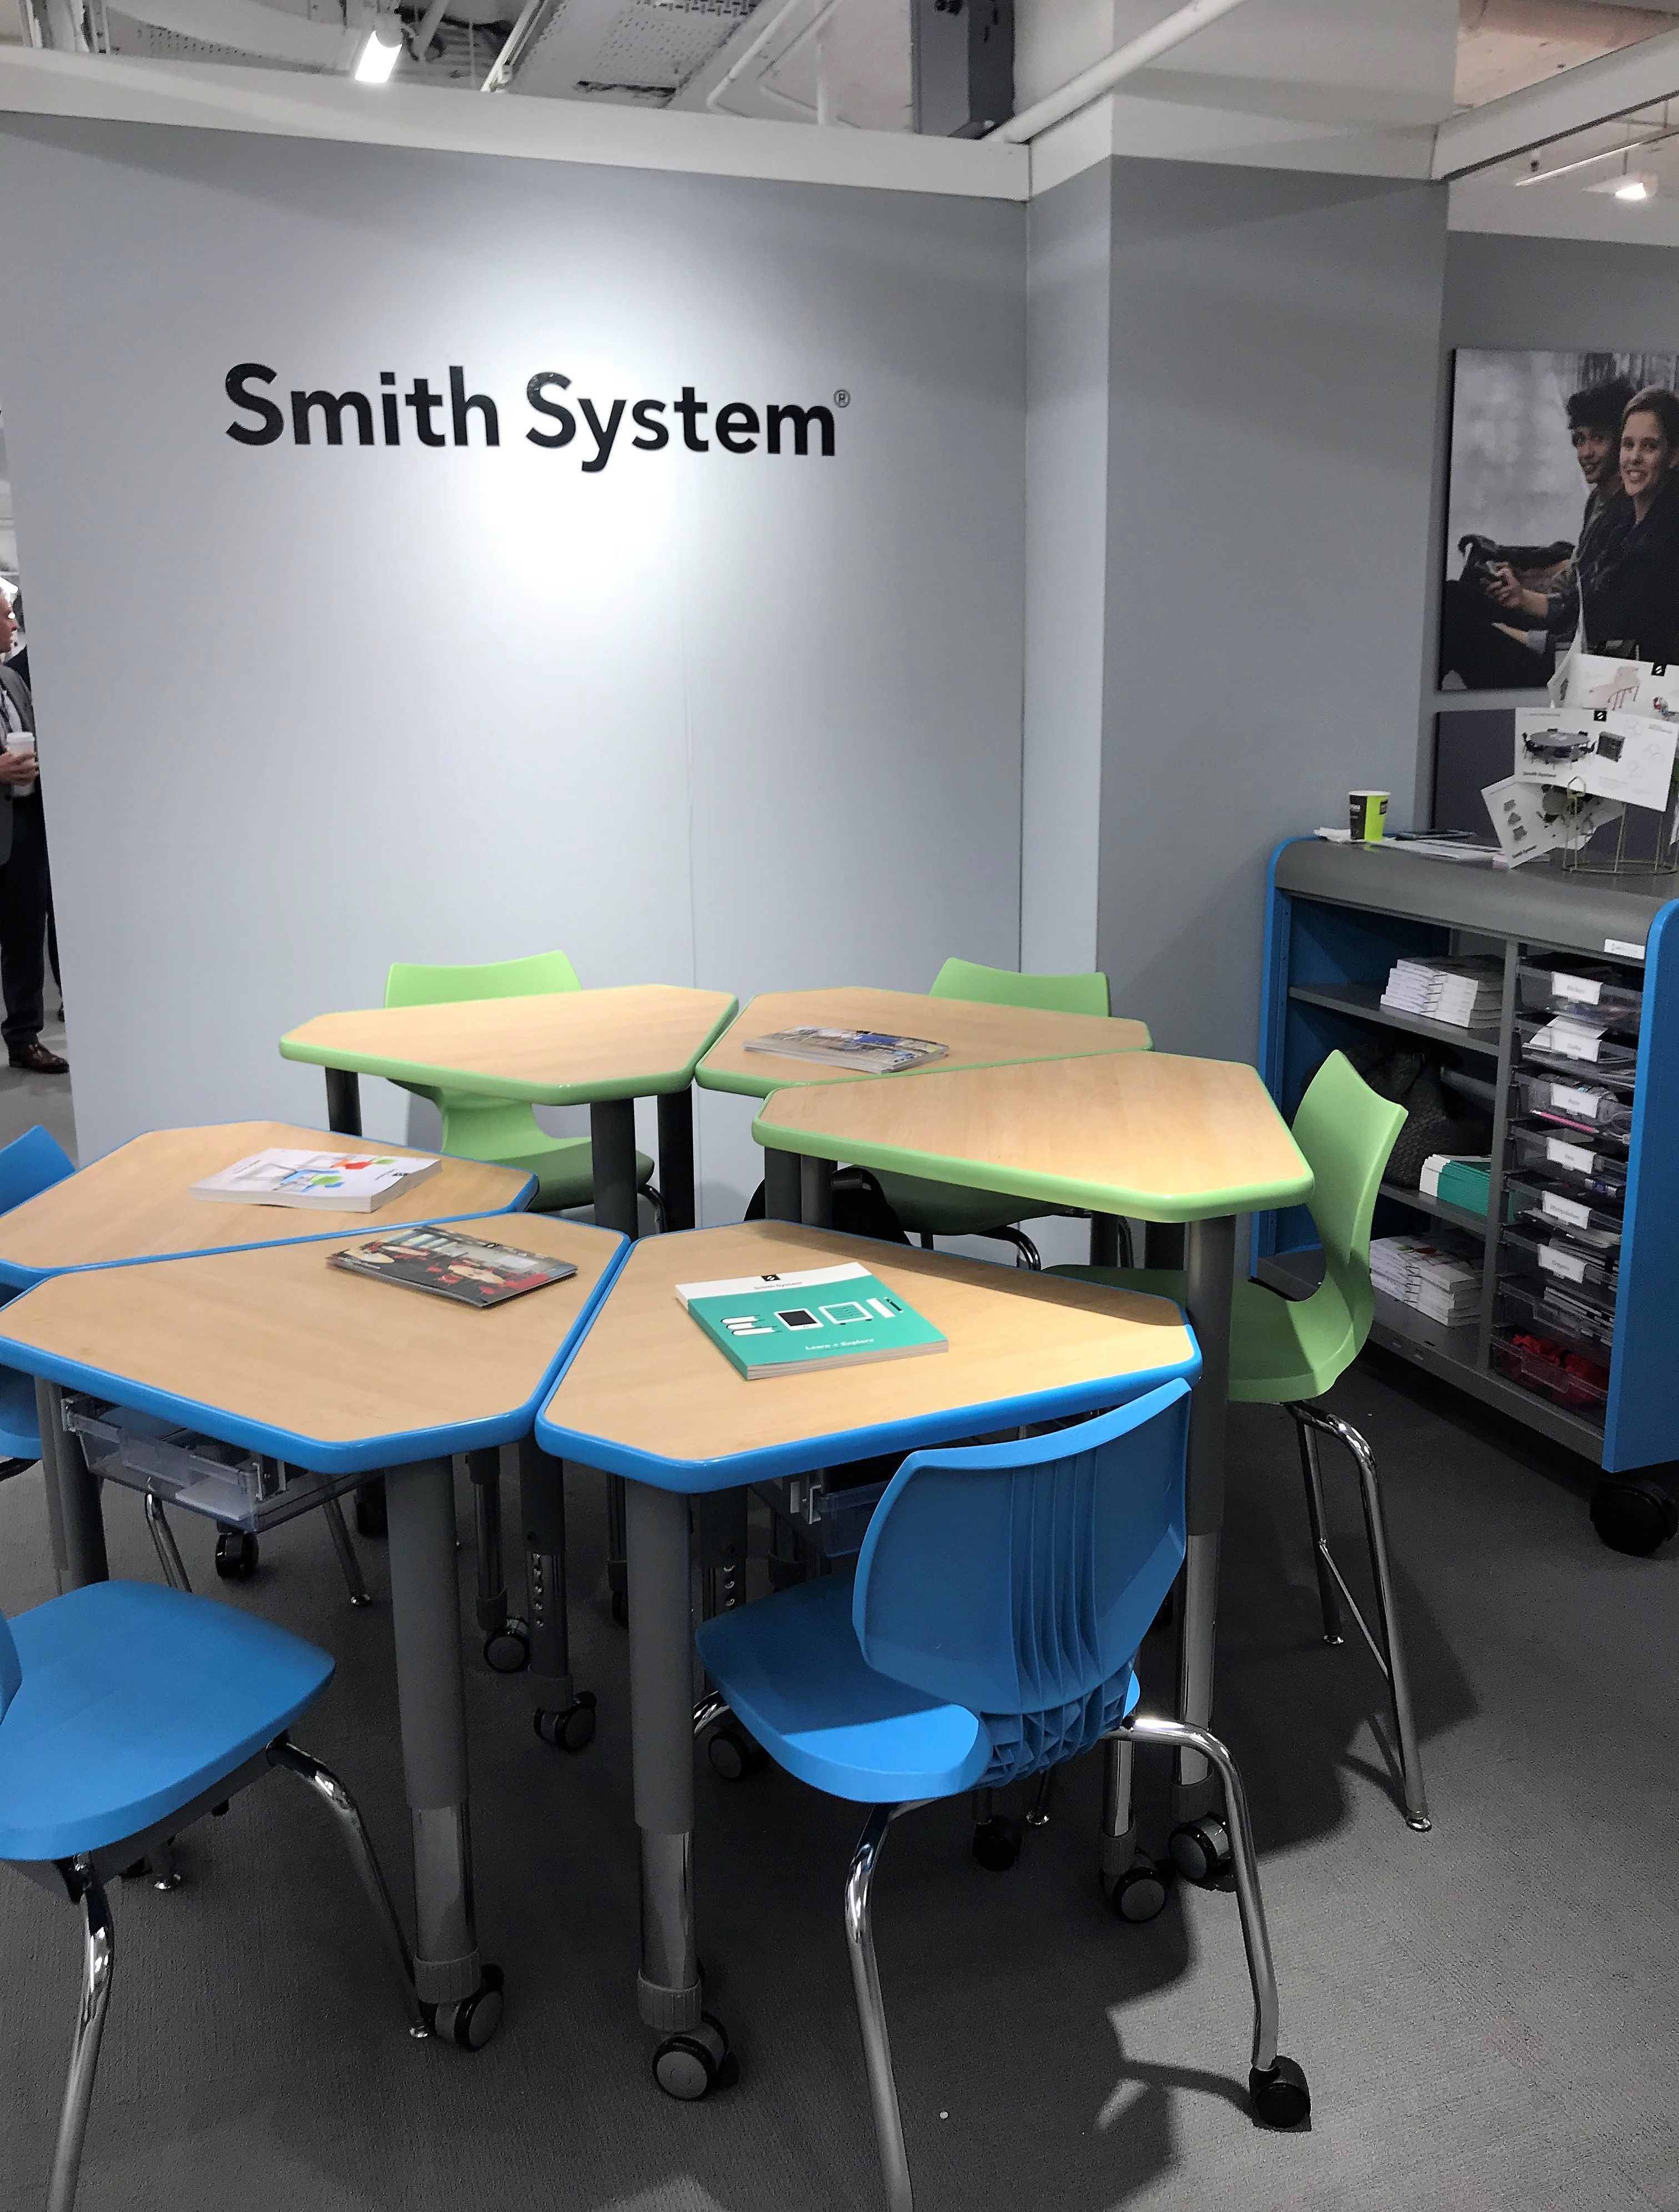 Steelcase Partnership With Smith System Brings A Line Of Furniture